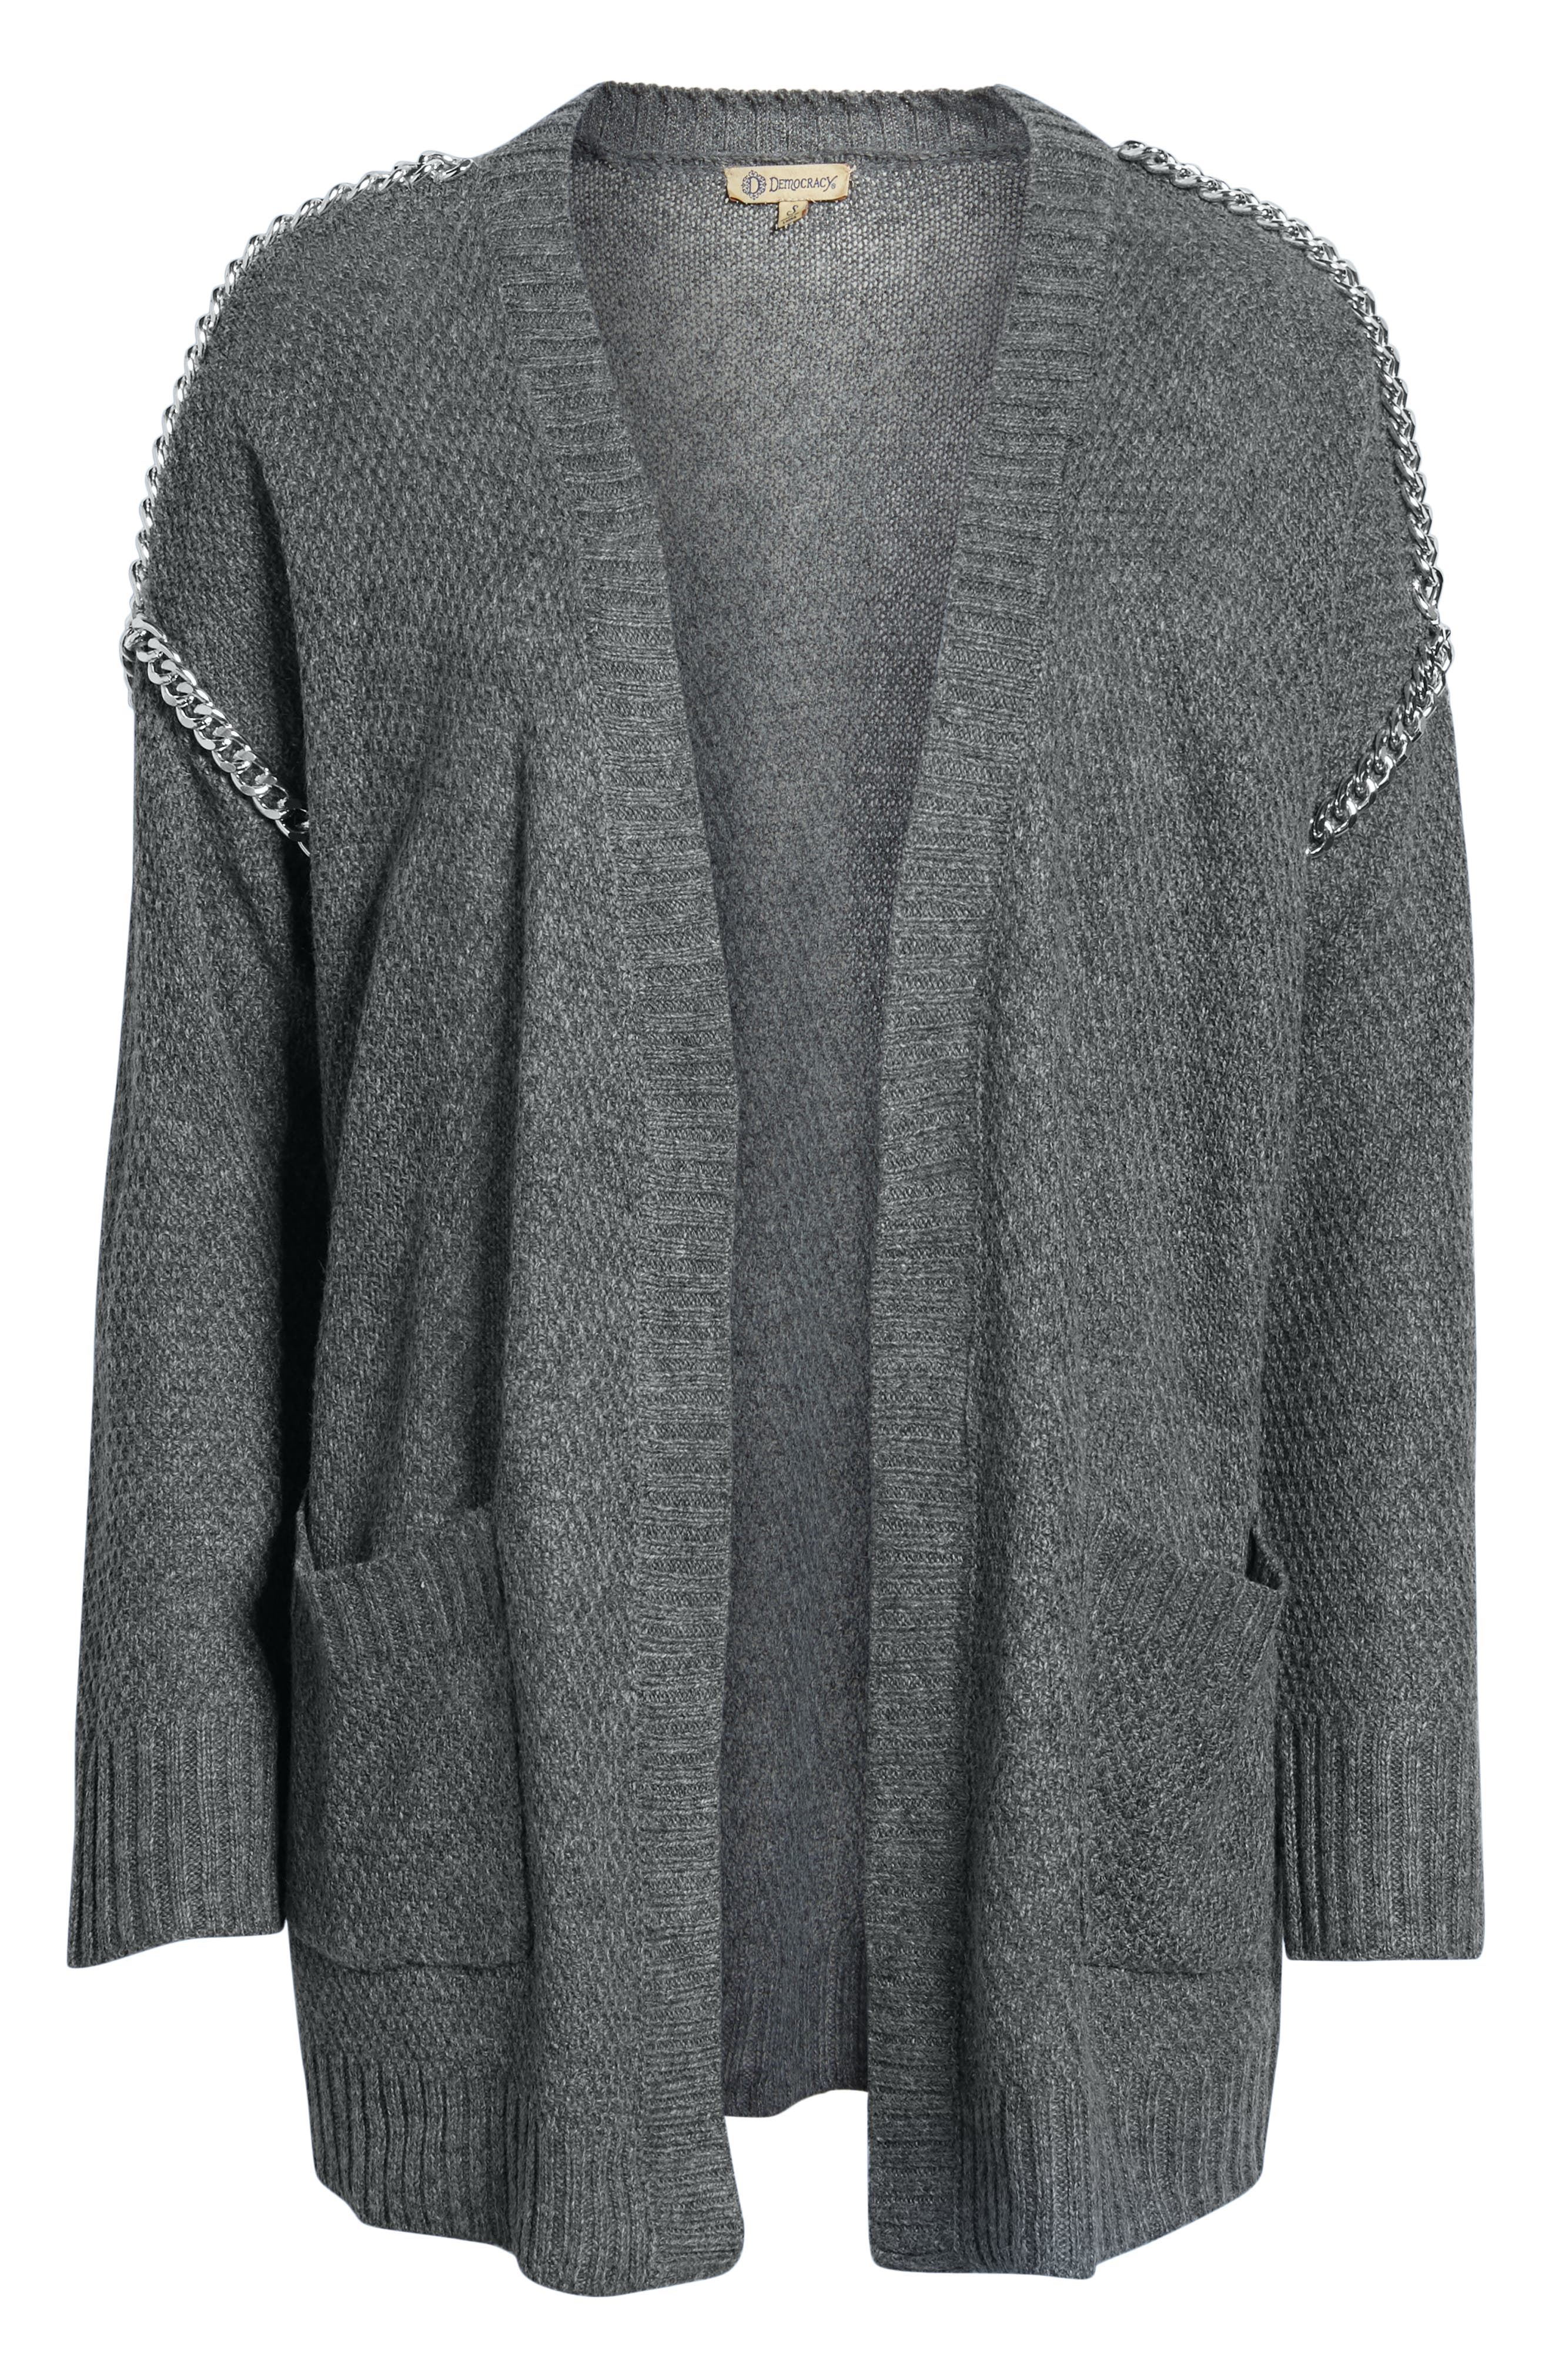 Chain Trim Cardigan,                             Alternate thumbnail 6, color,                             CHARCOAL